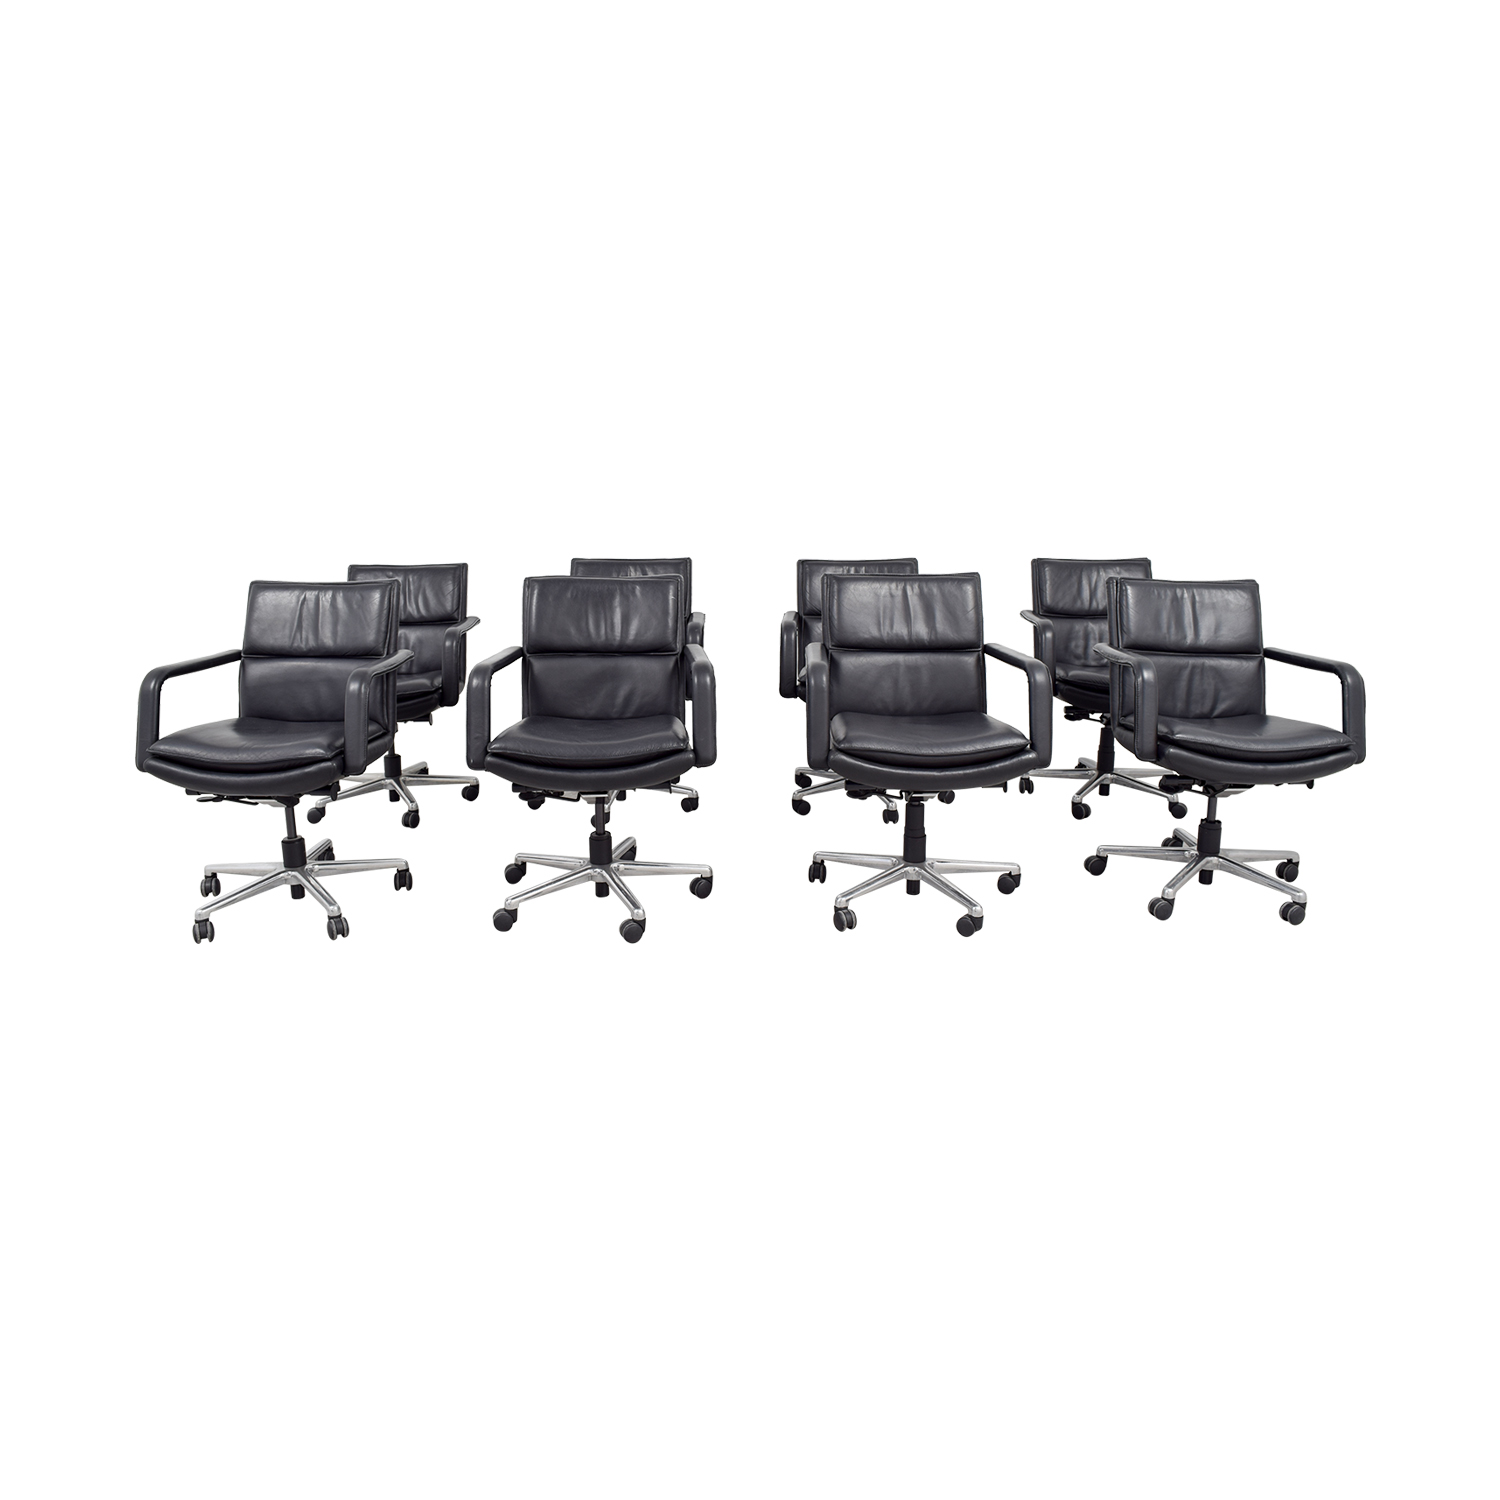 49% OFF - Black Leather Conference Room Chairs / Chairs